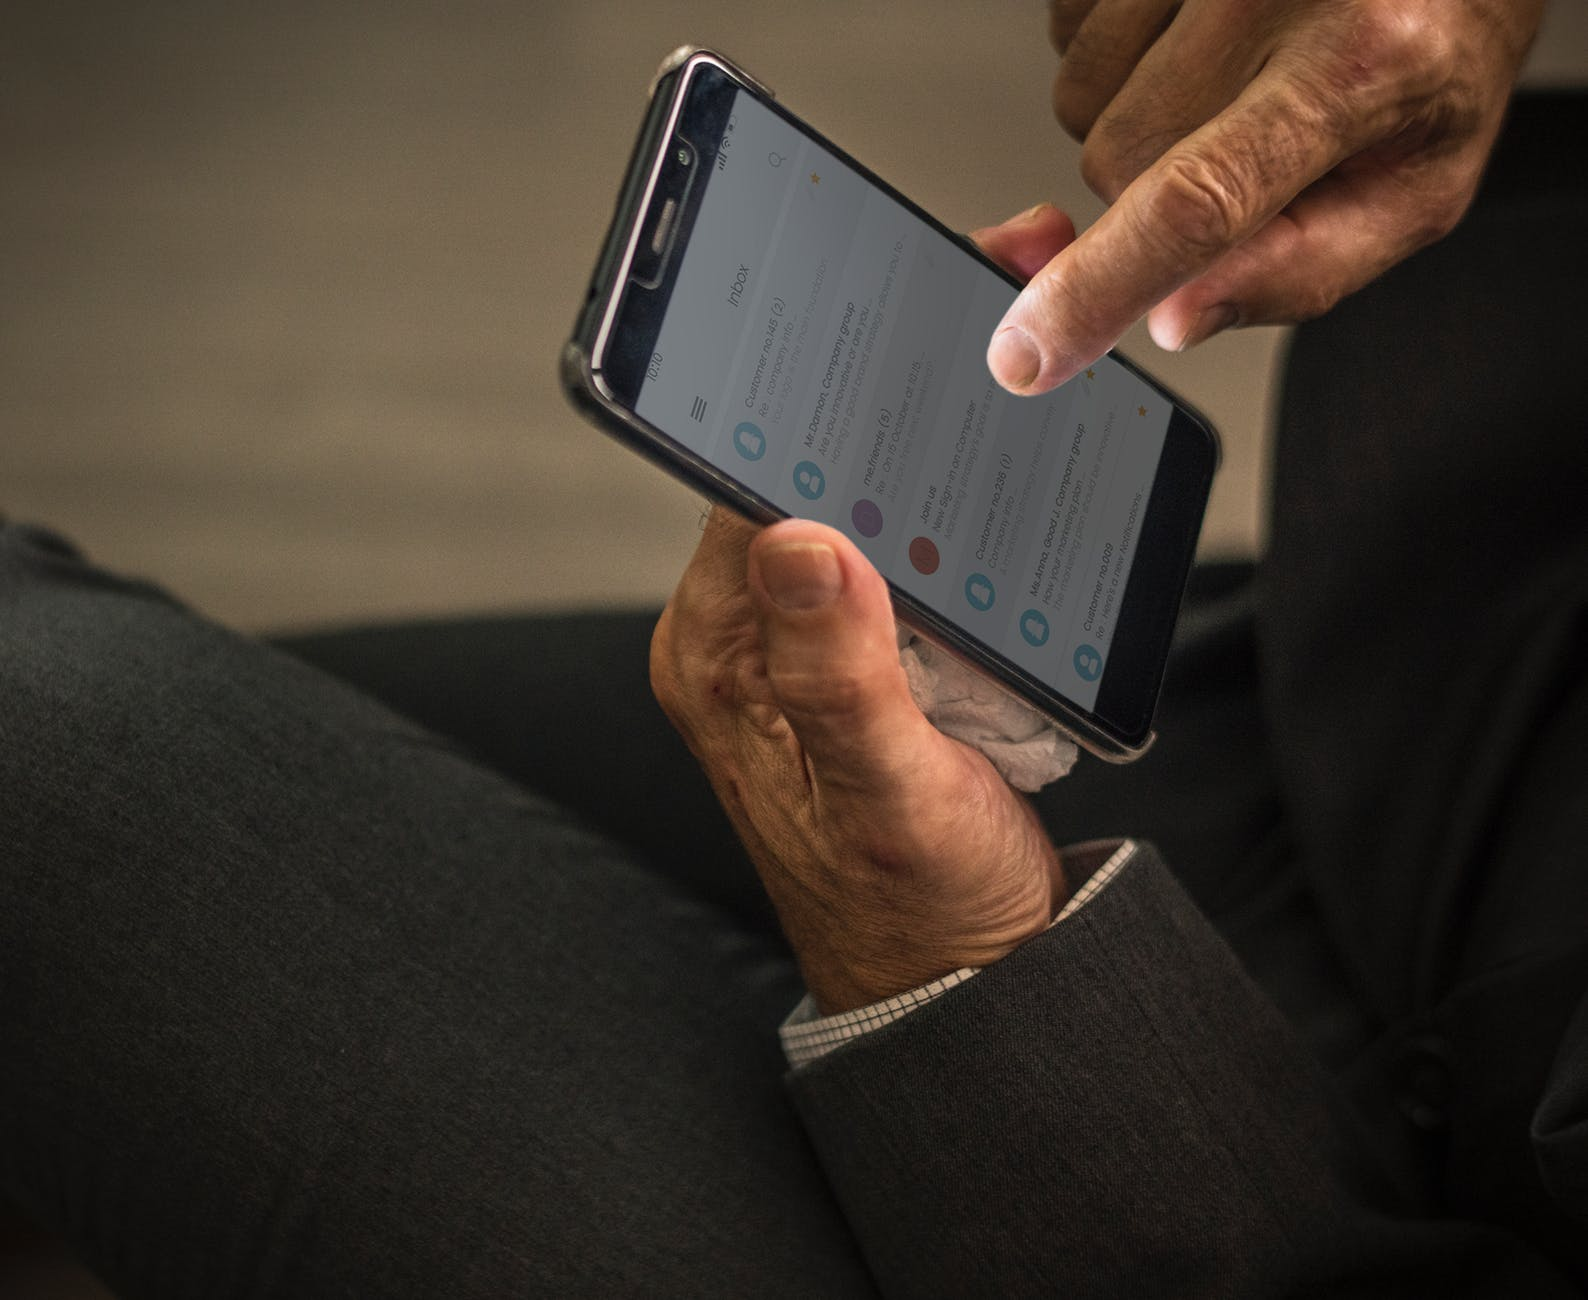 a person holding a cell phone